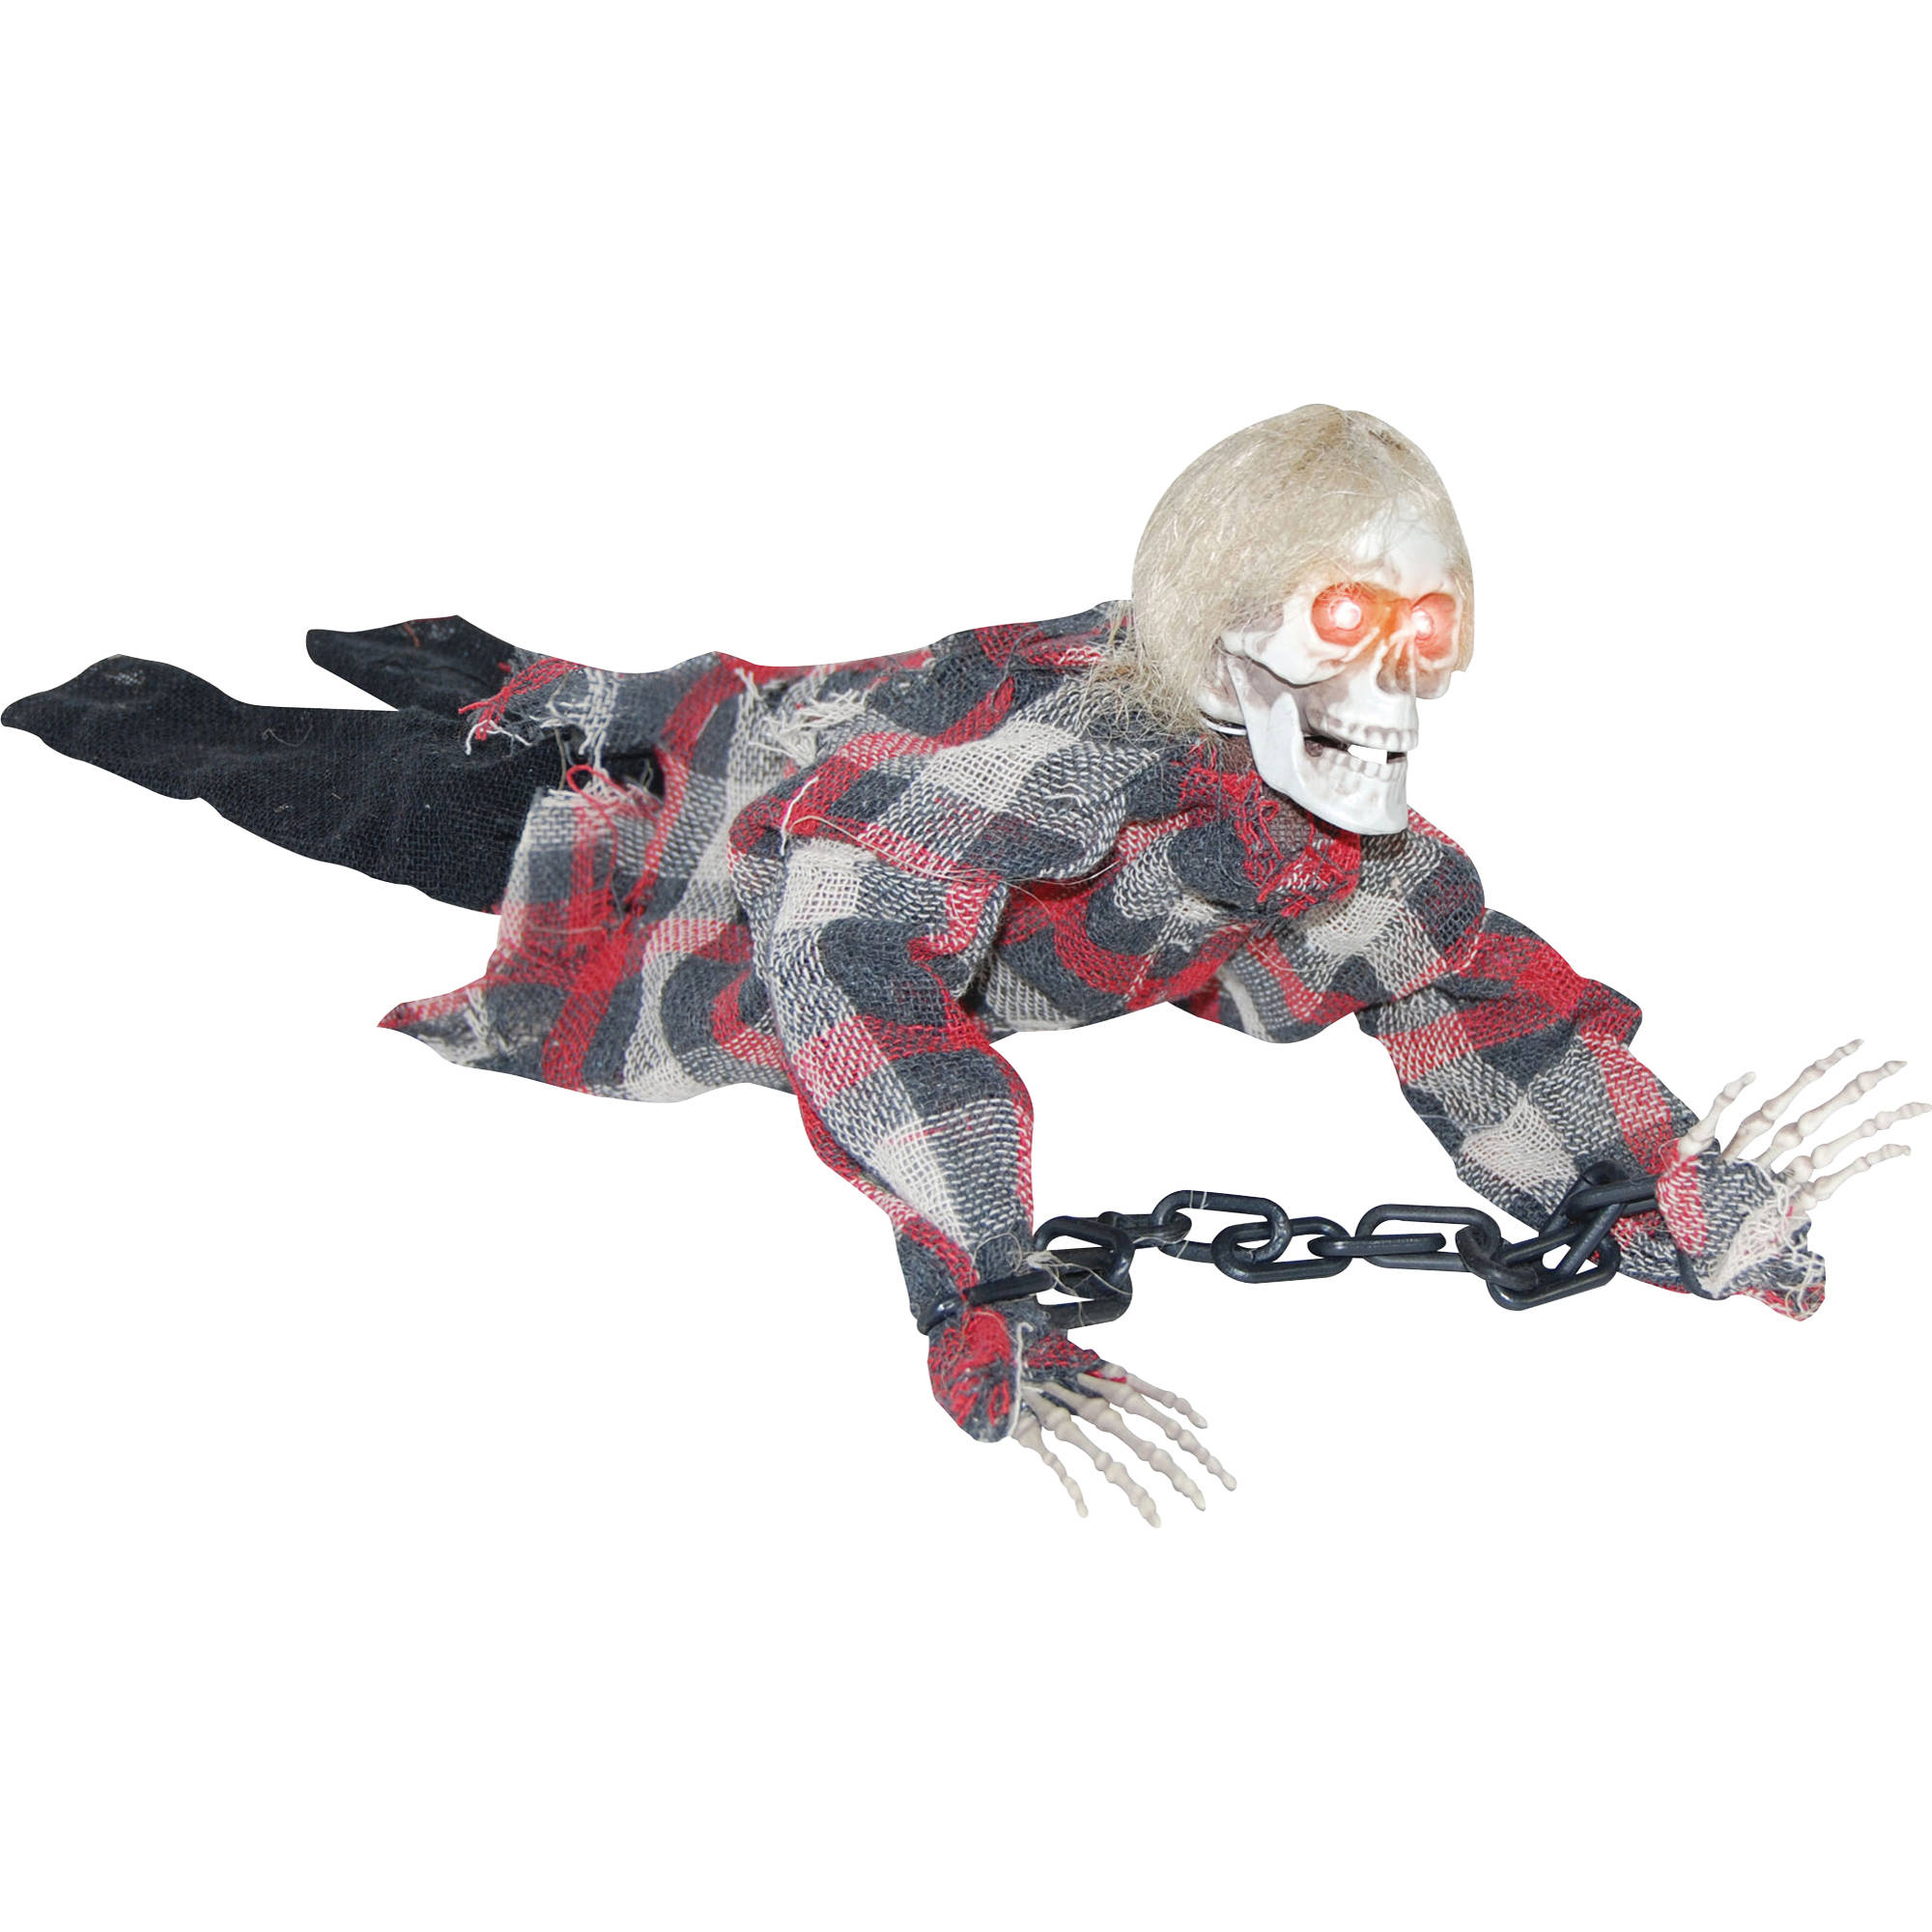 Animated Reaper In Chains Halloween Decoration